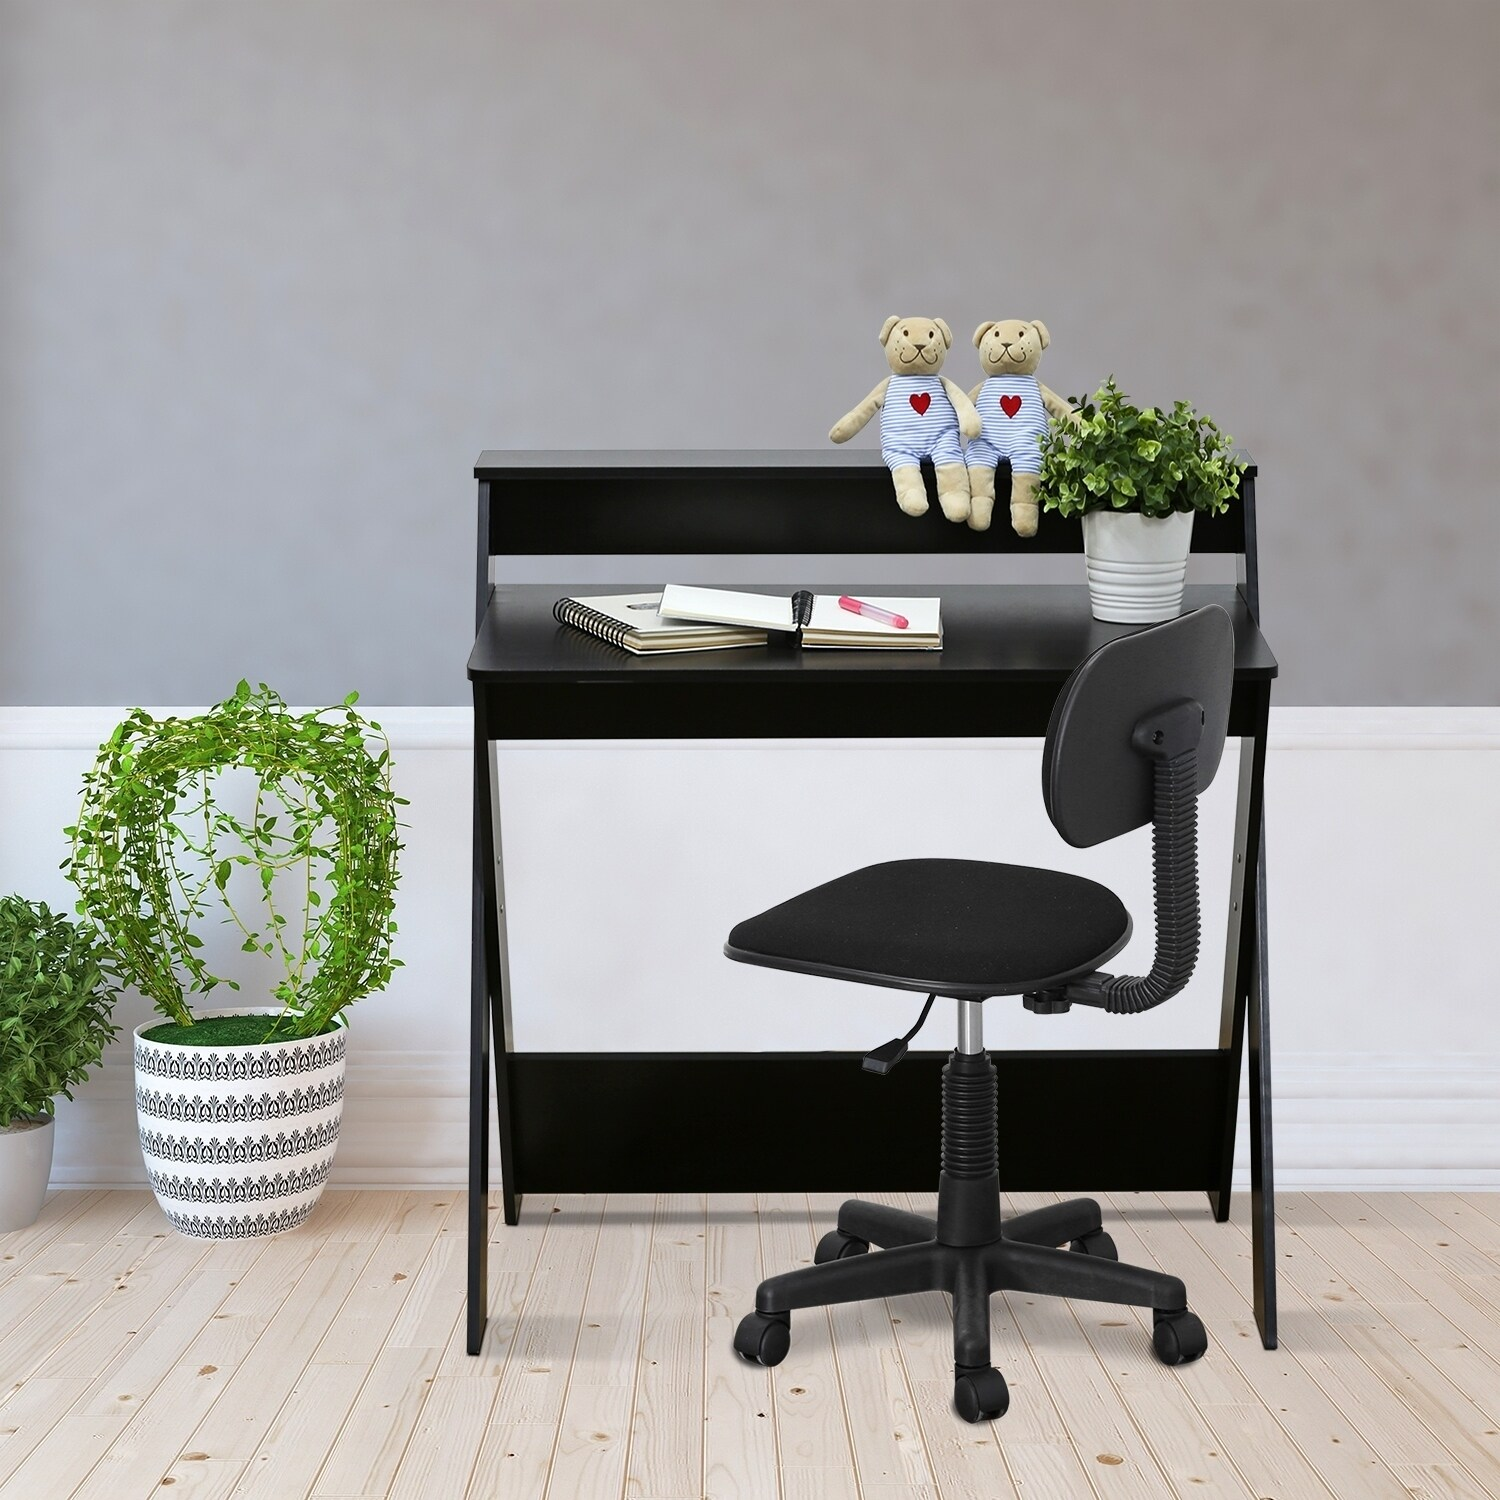 office study desk. Furinno Modern Simplistic Criss-Crossed Home Office Study Desk, Espresso - Free Shipping Today Overstock 24023440 Desk